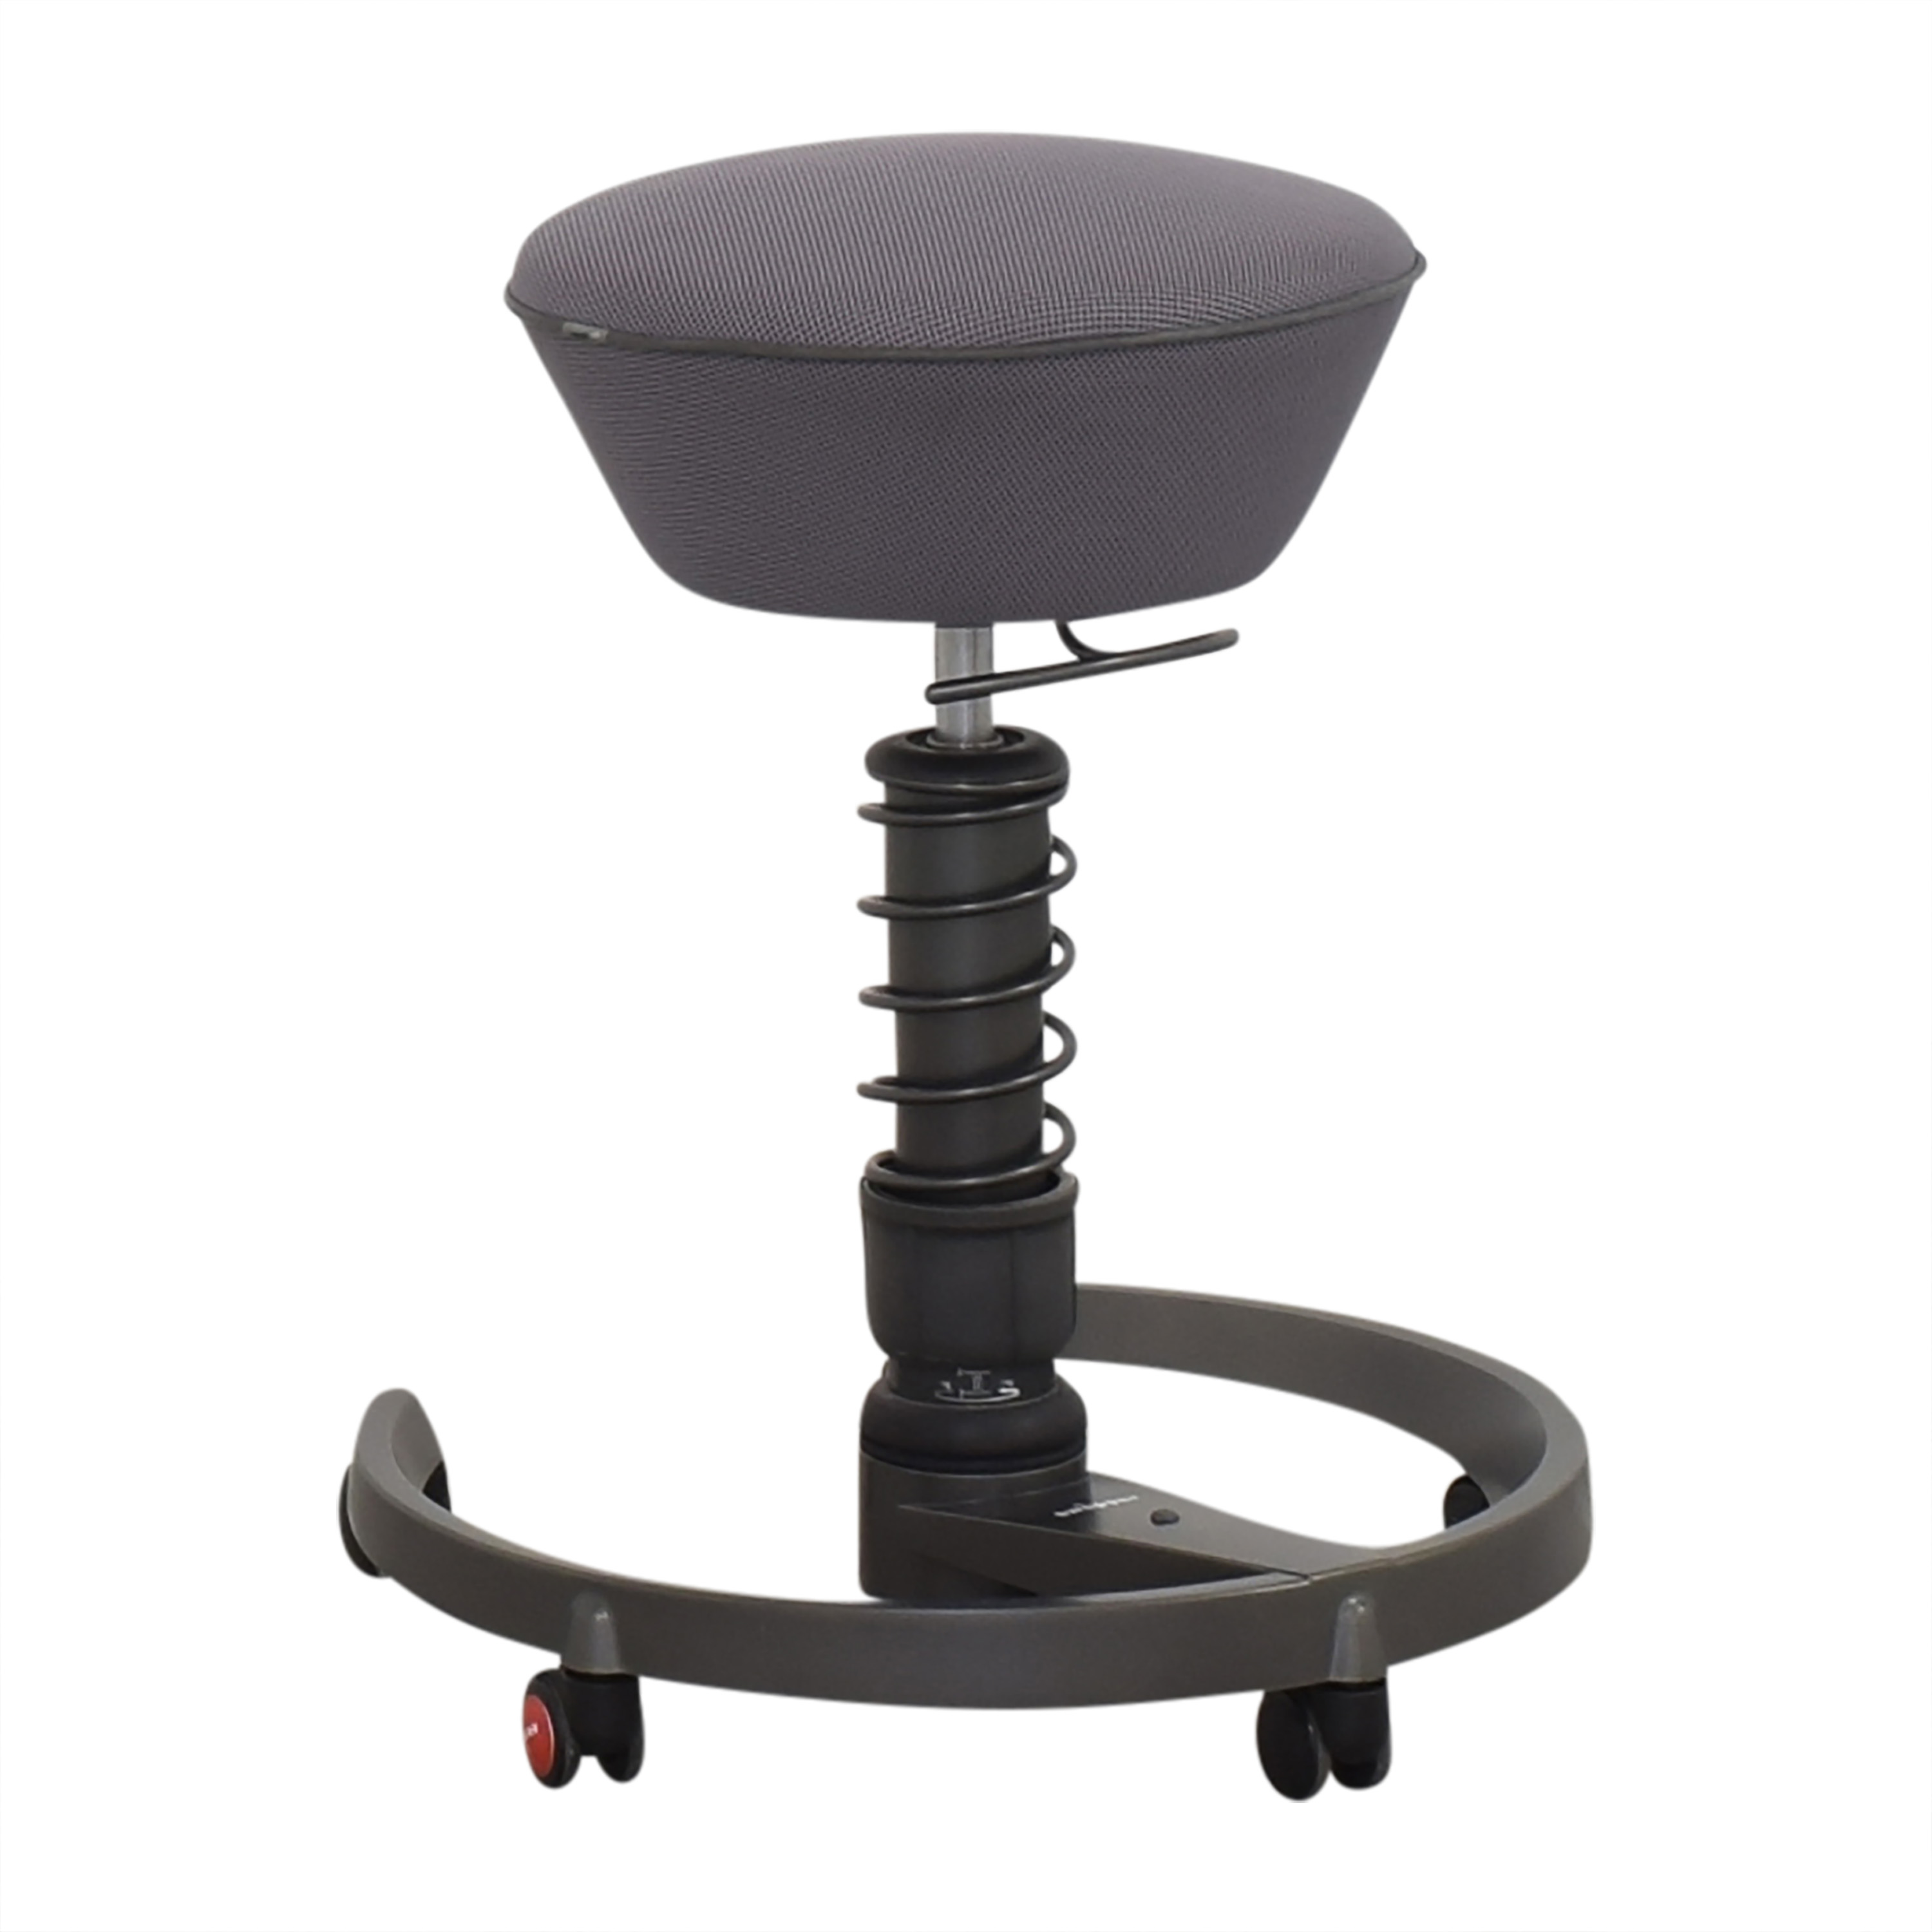 Aeris Aeris Swopper Air Stool with Casters second hand